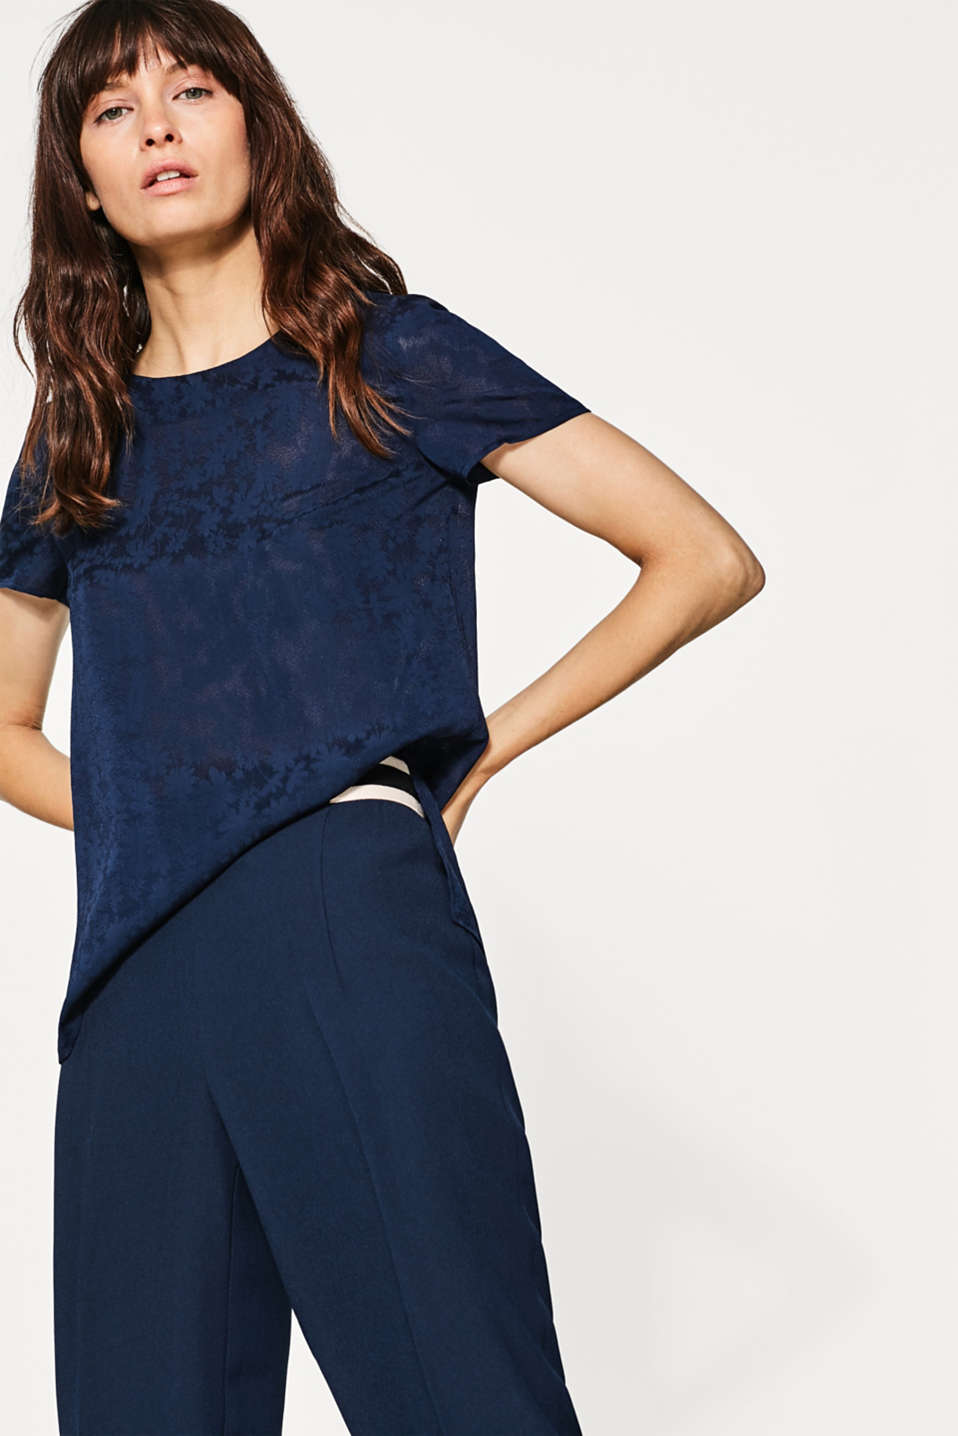 Esprit - Blouse in flowing jacquard fabric